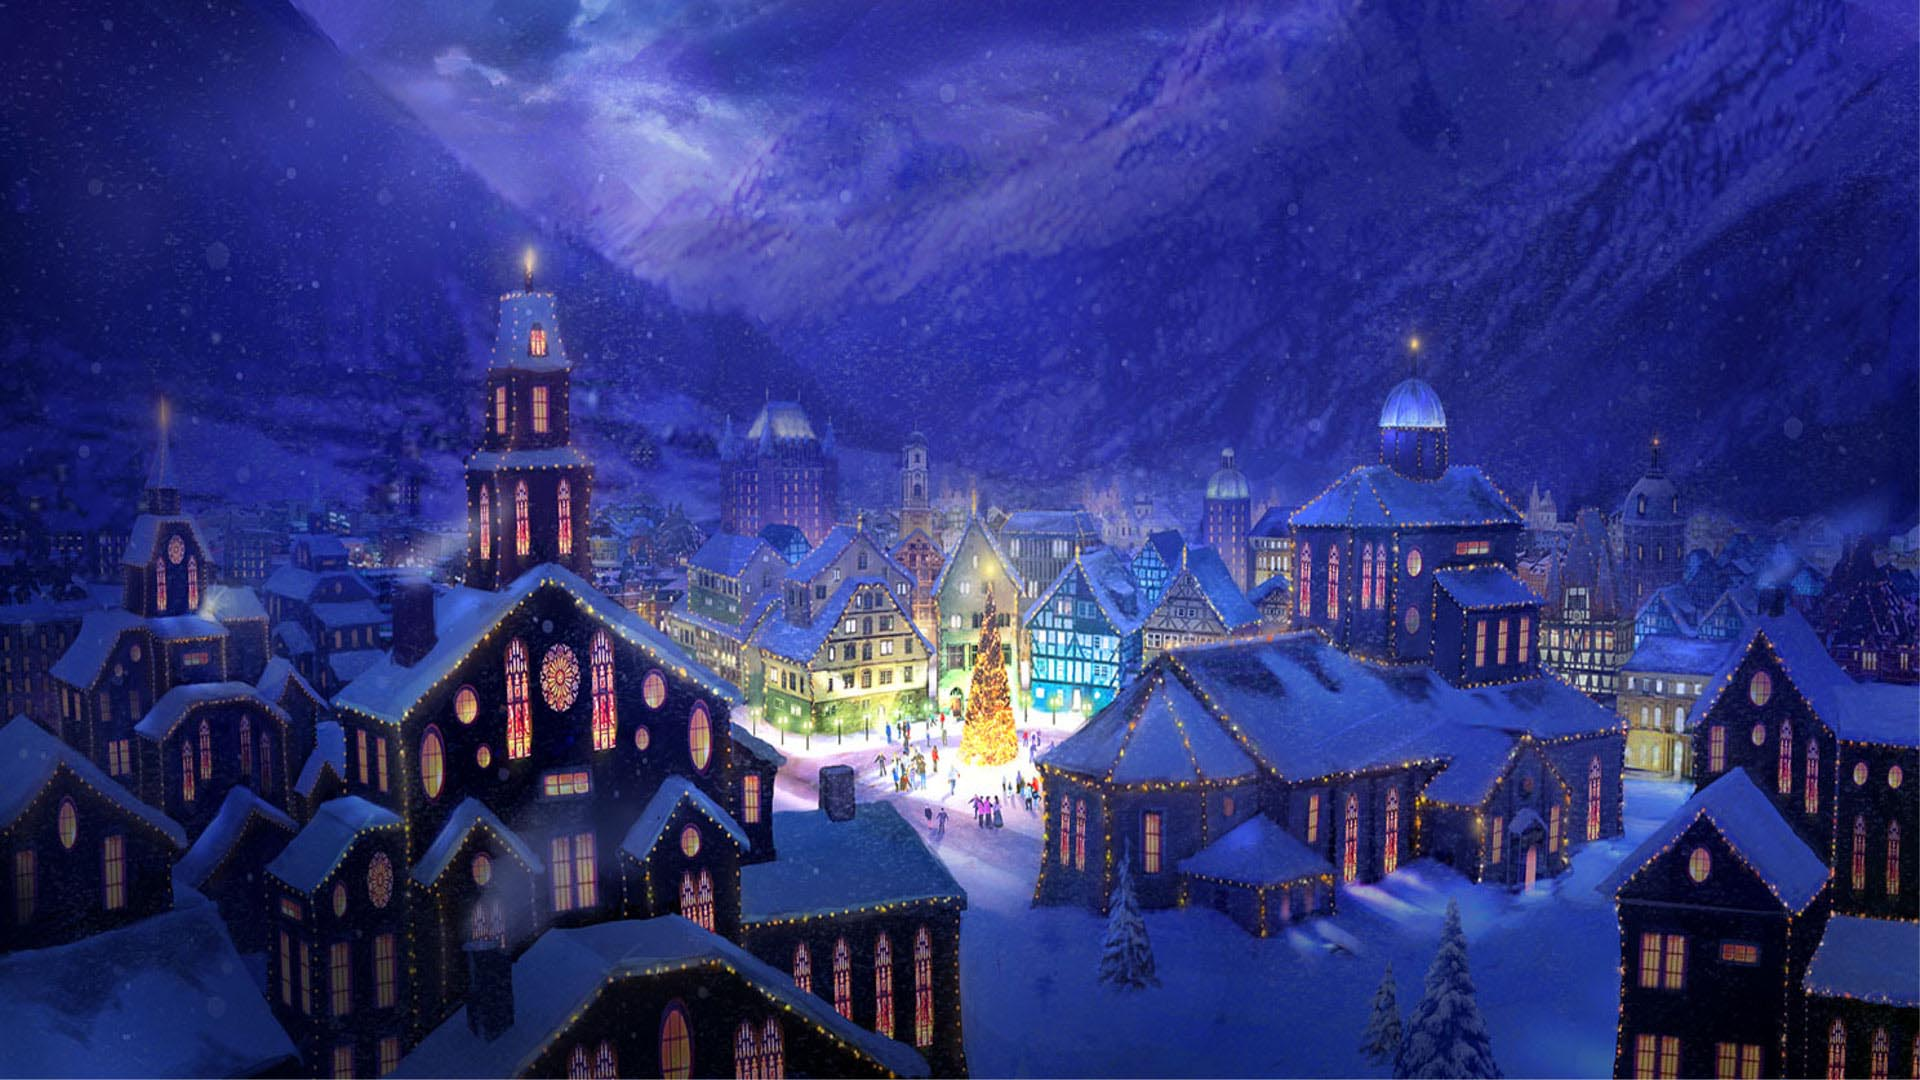 Christmas Village Square HD Wallpaper FullHDWpp   Full HD 1920x1080